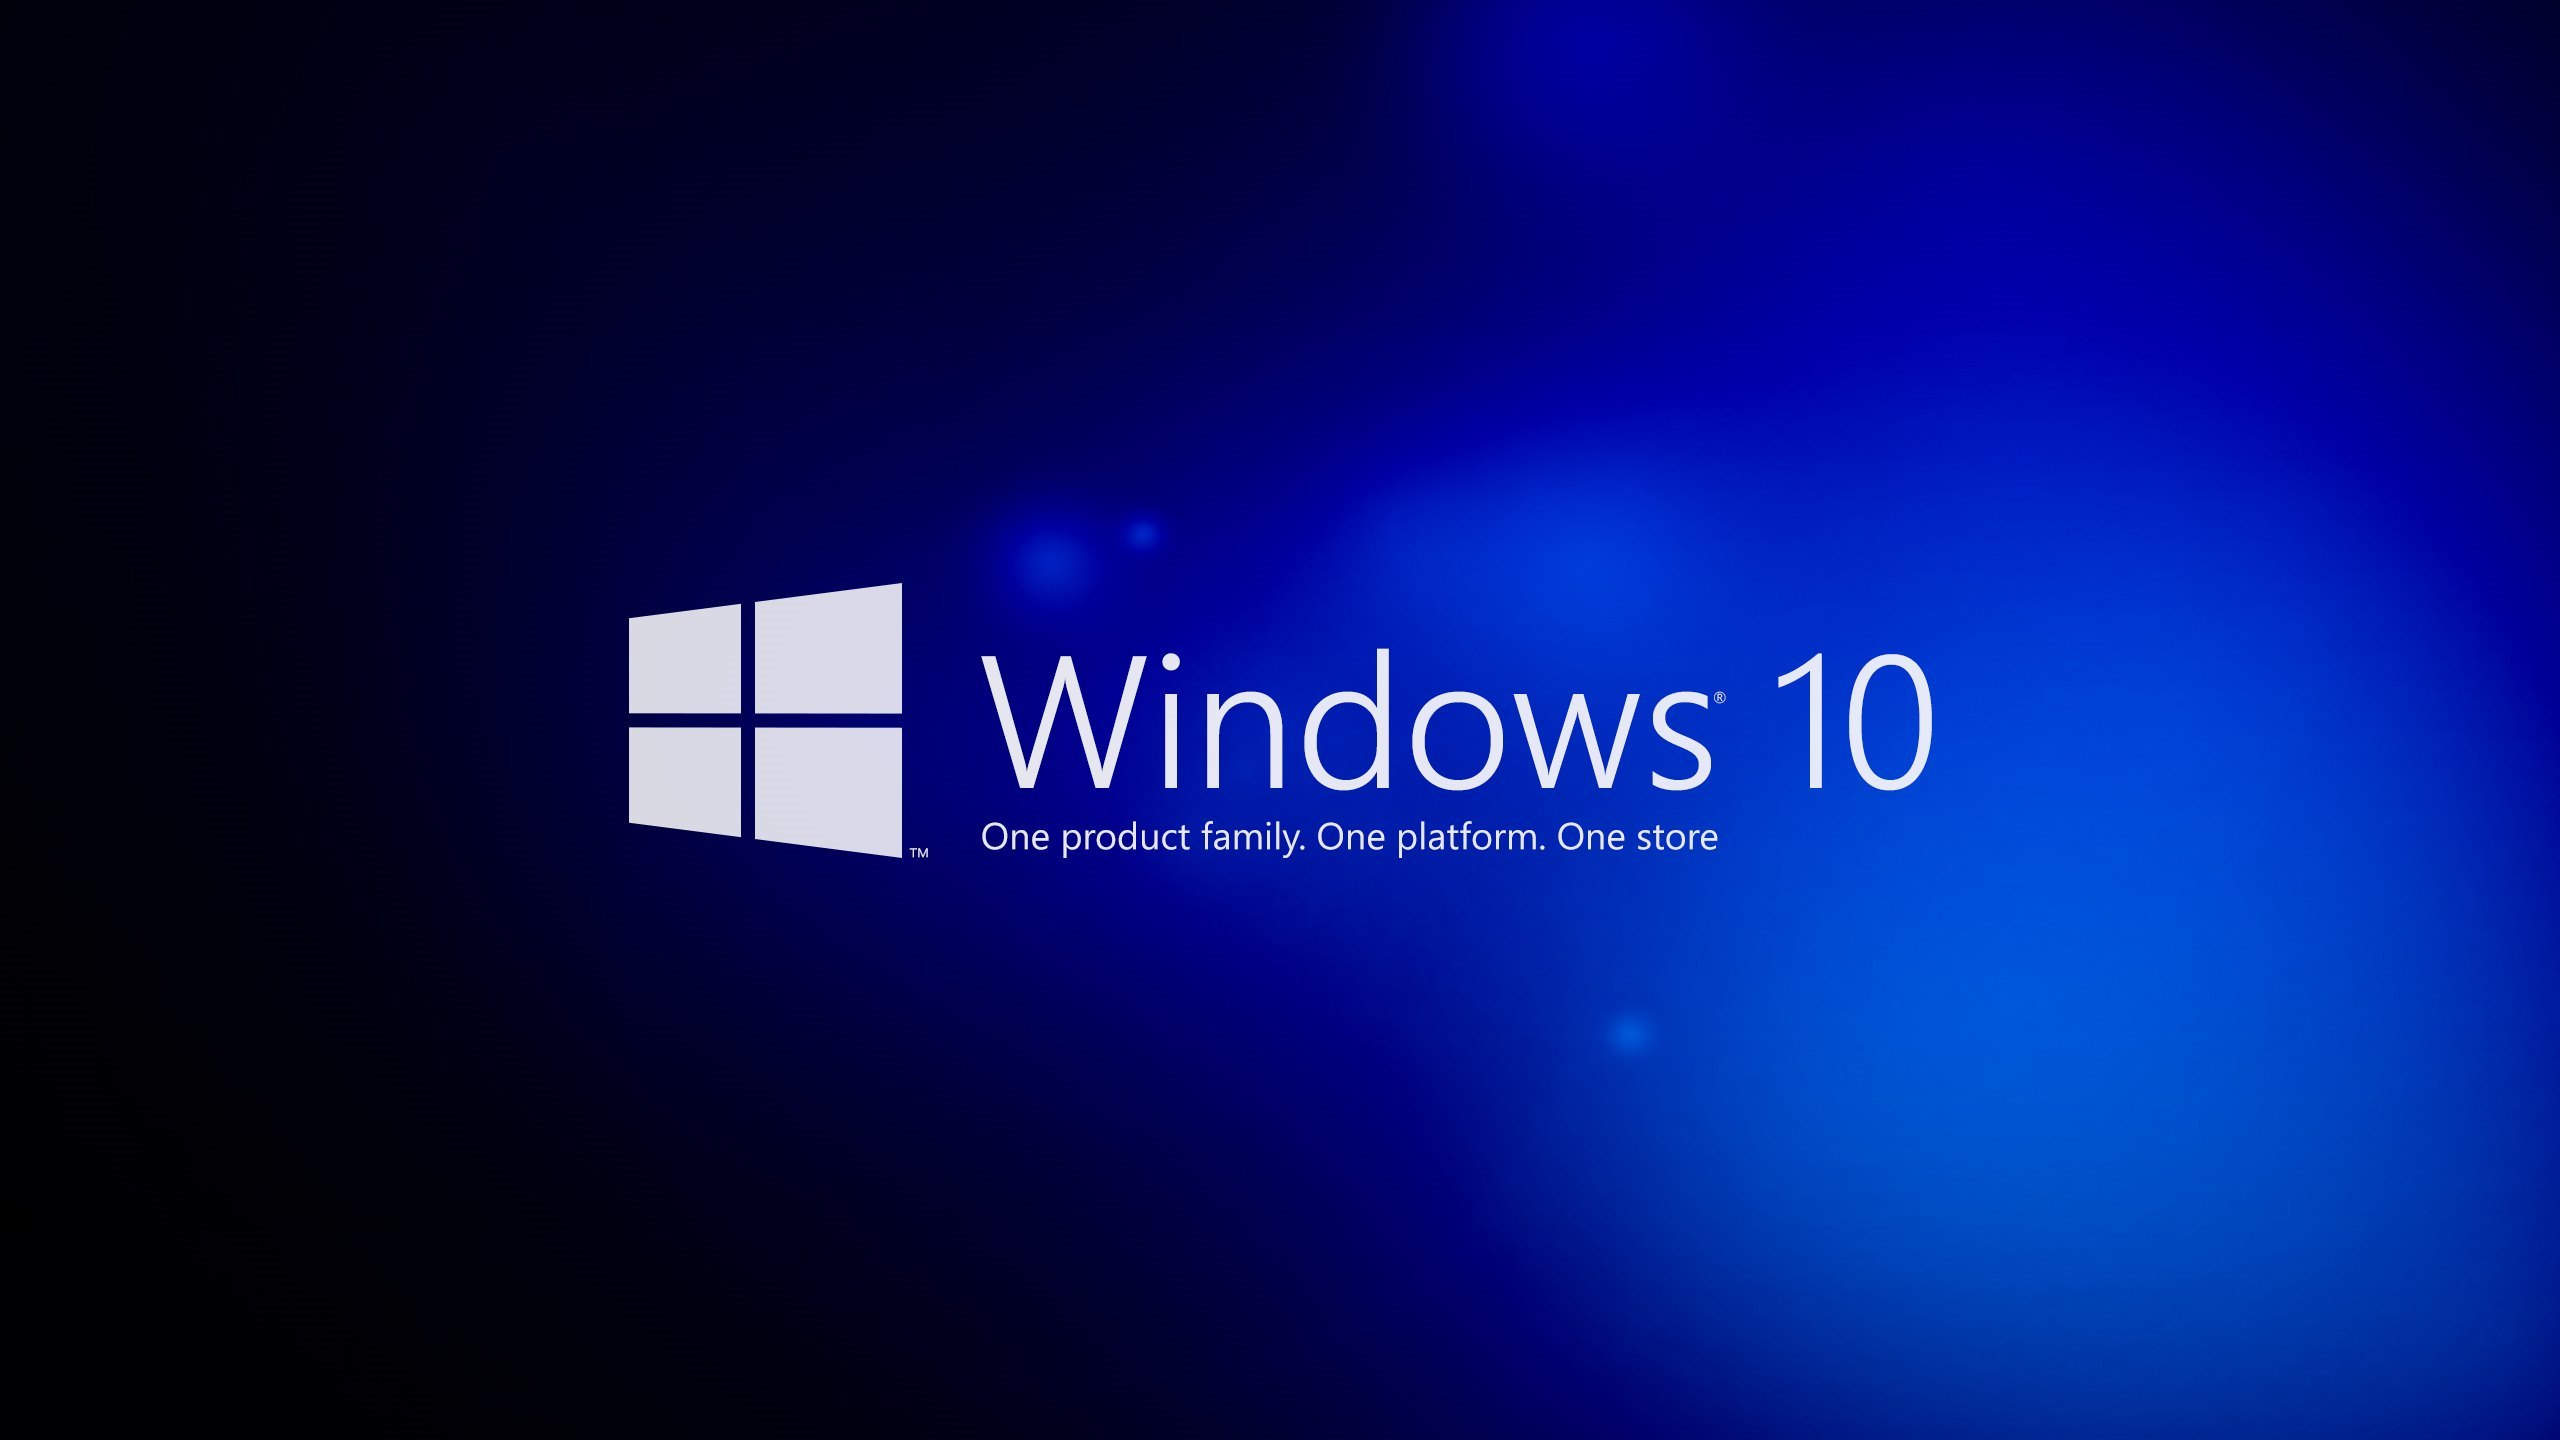 Windows 10 Wallpapers Desktop Backgrounds   7   HD Wallpapers 2560x1440